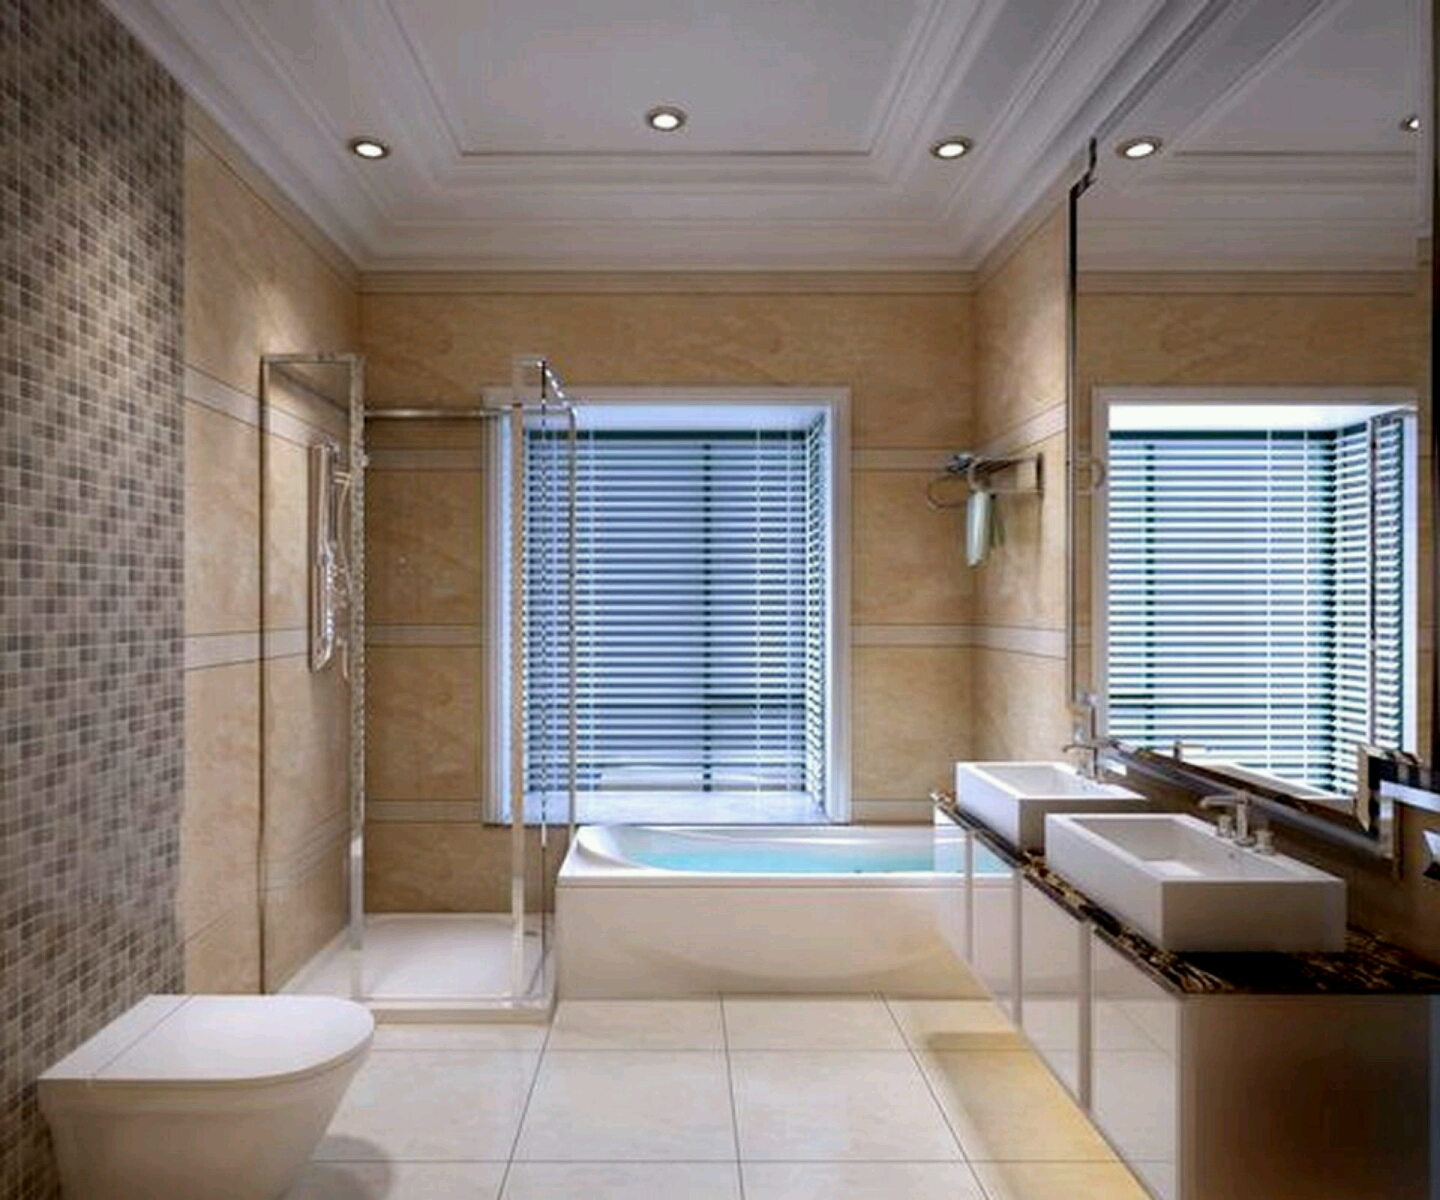 Modern bathrooms best designs ideas. (3)